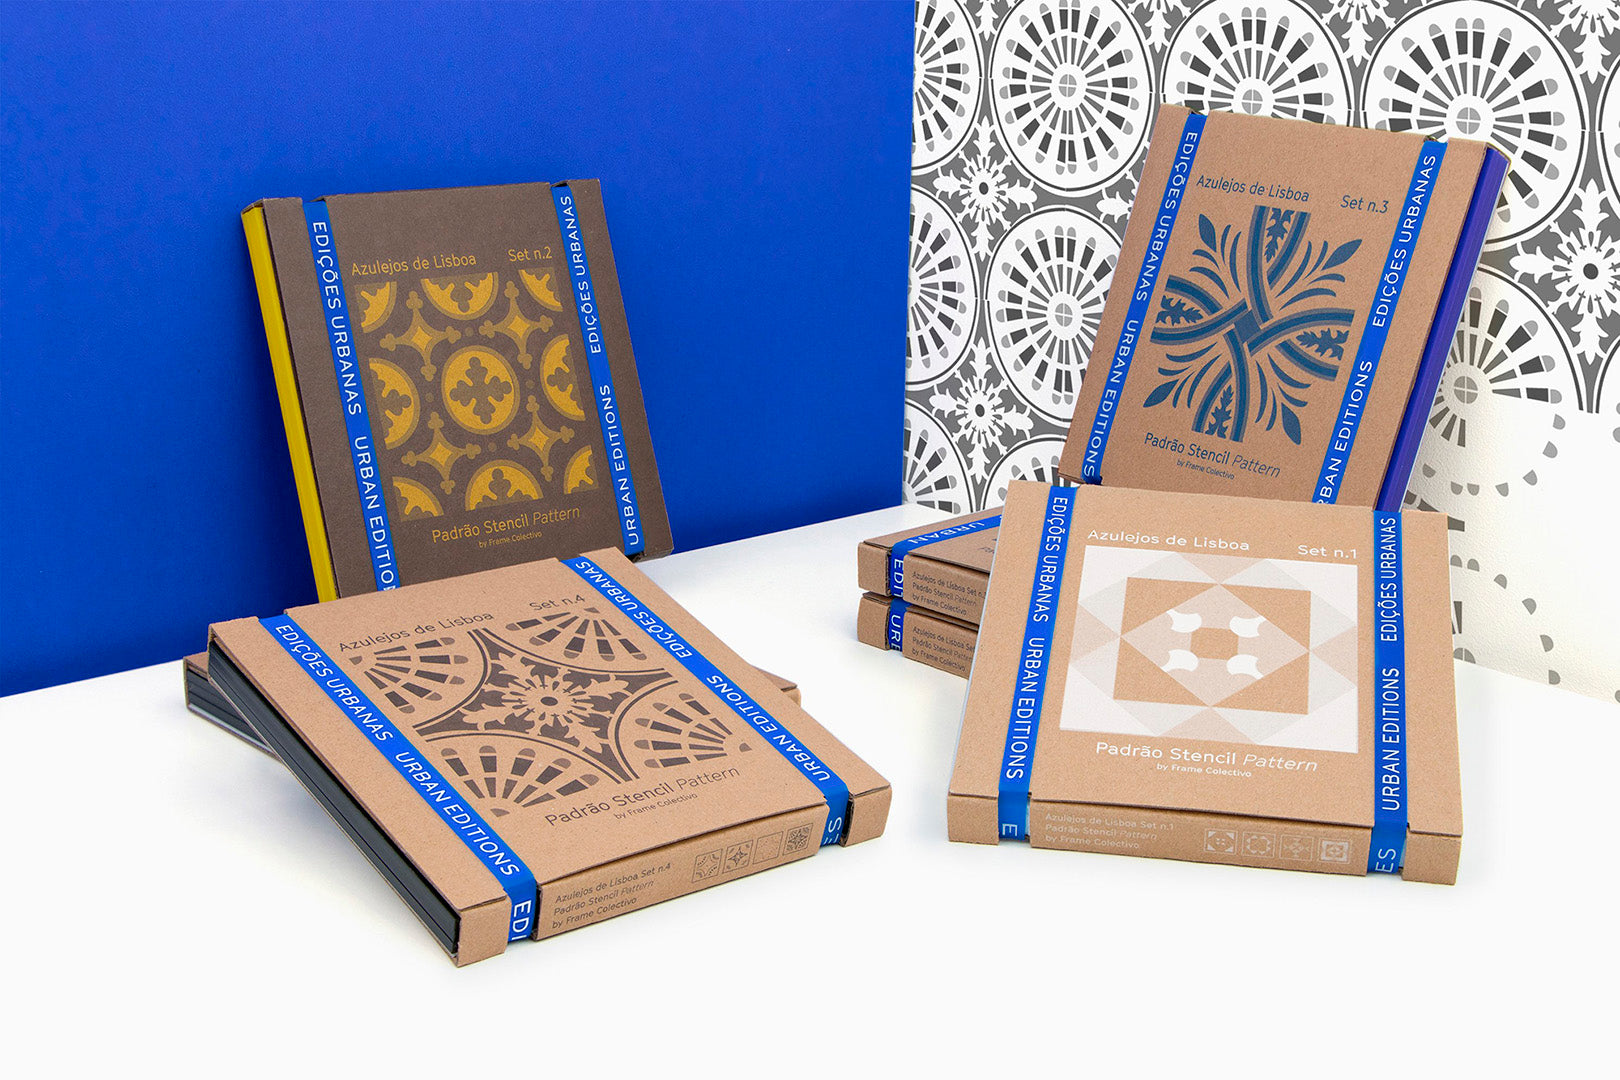 Reproduce Lisbon's tile with the DIY Stencil Set Pattern - Azulejos de fachada de Lisboa ® URBAN EDITIONS